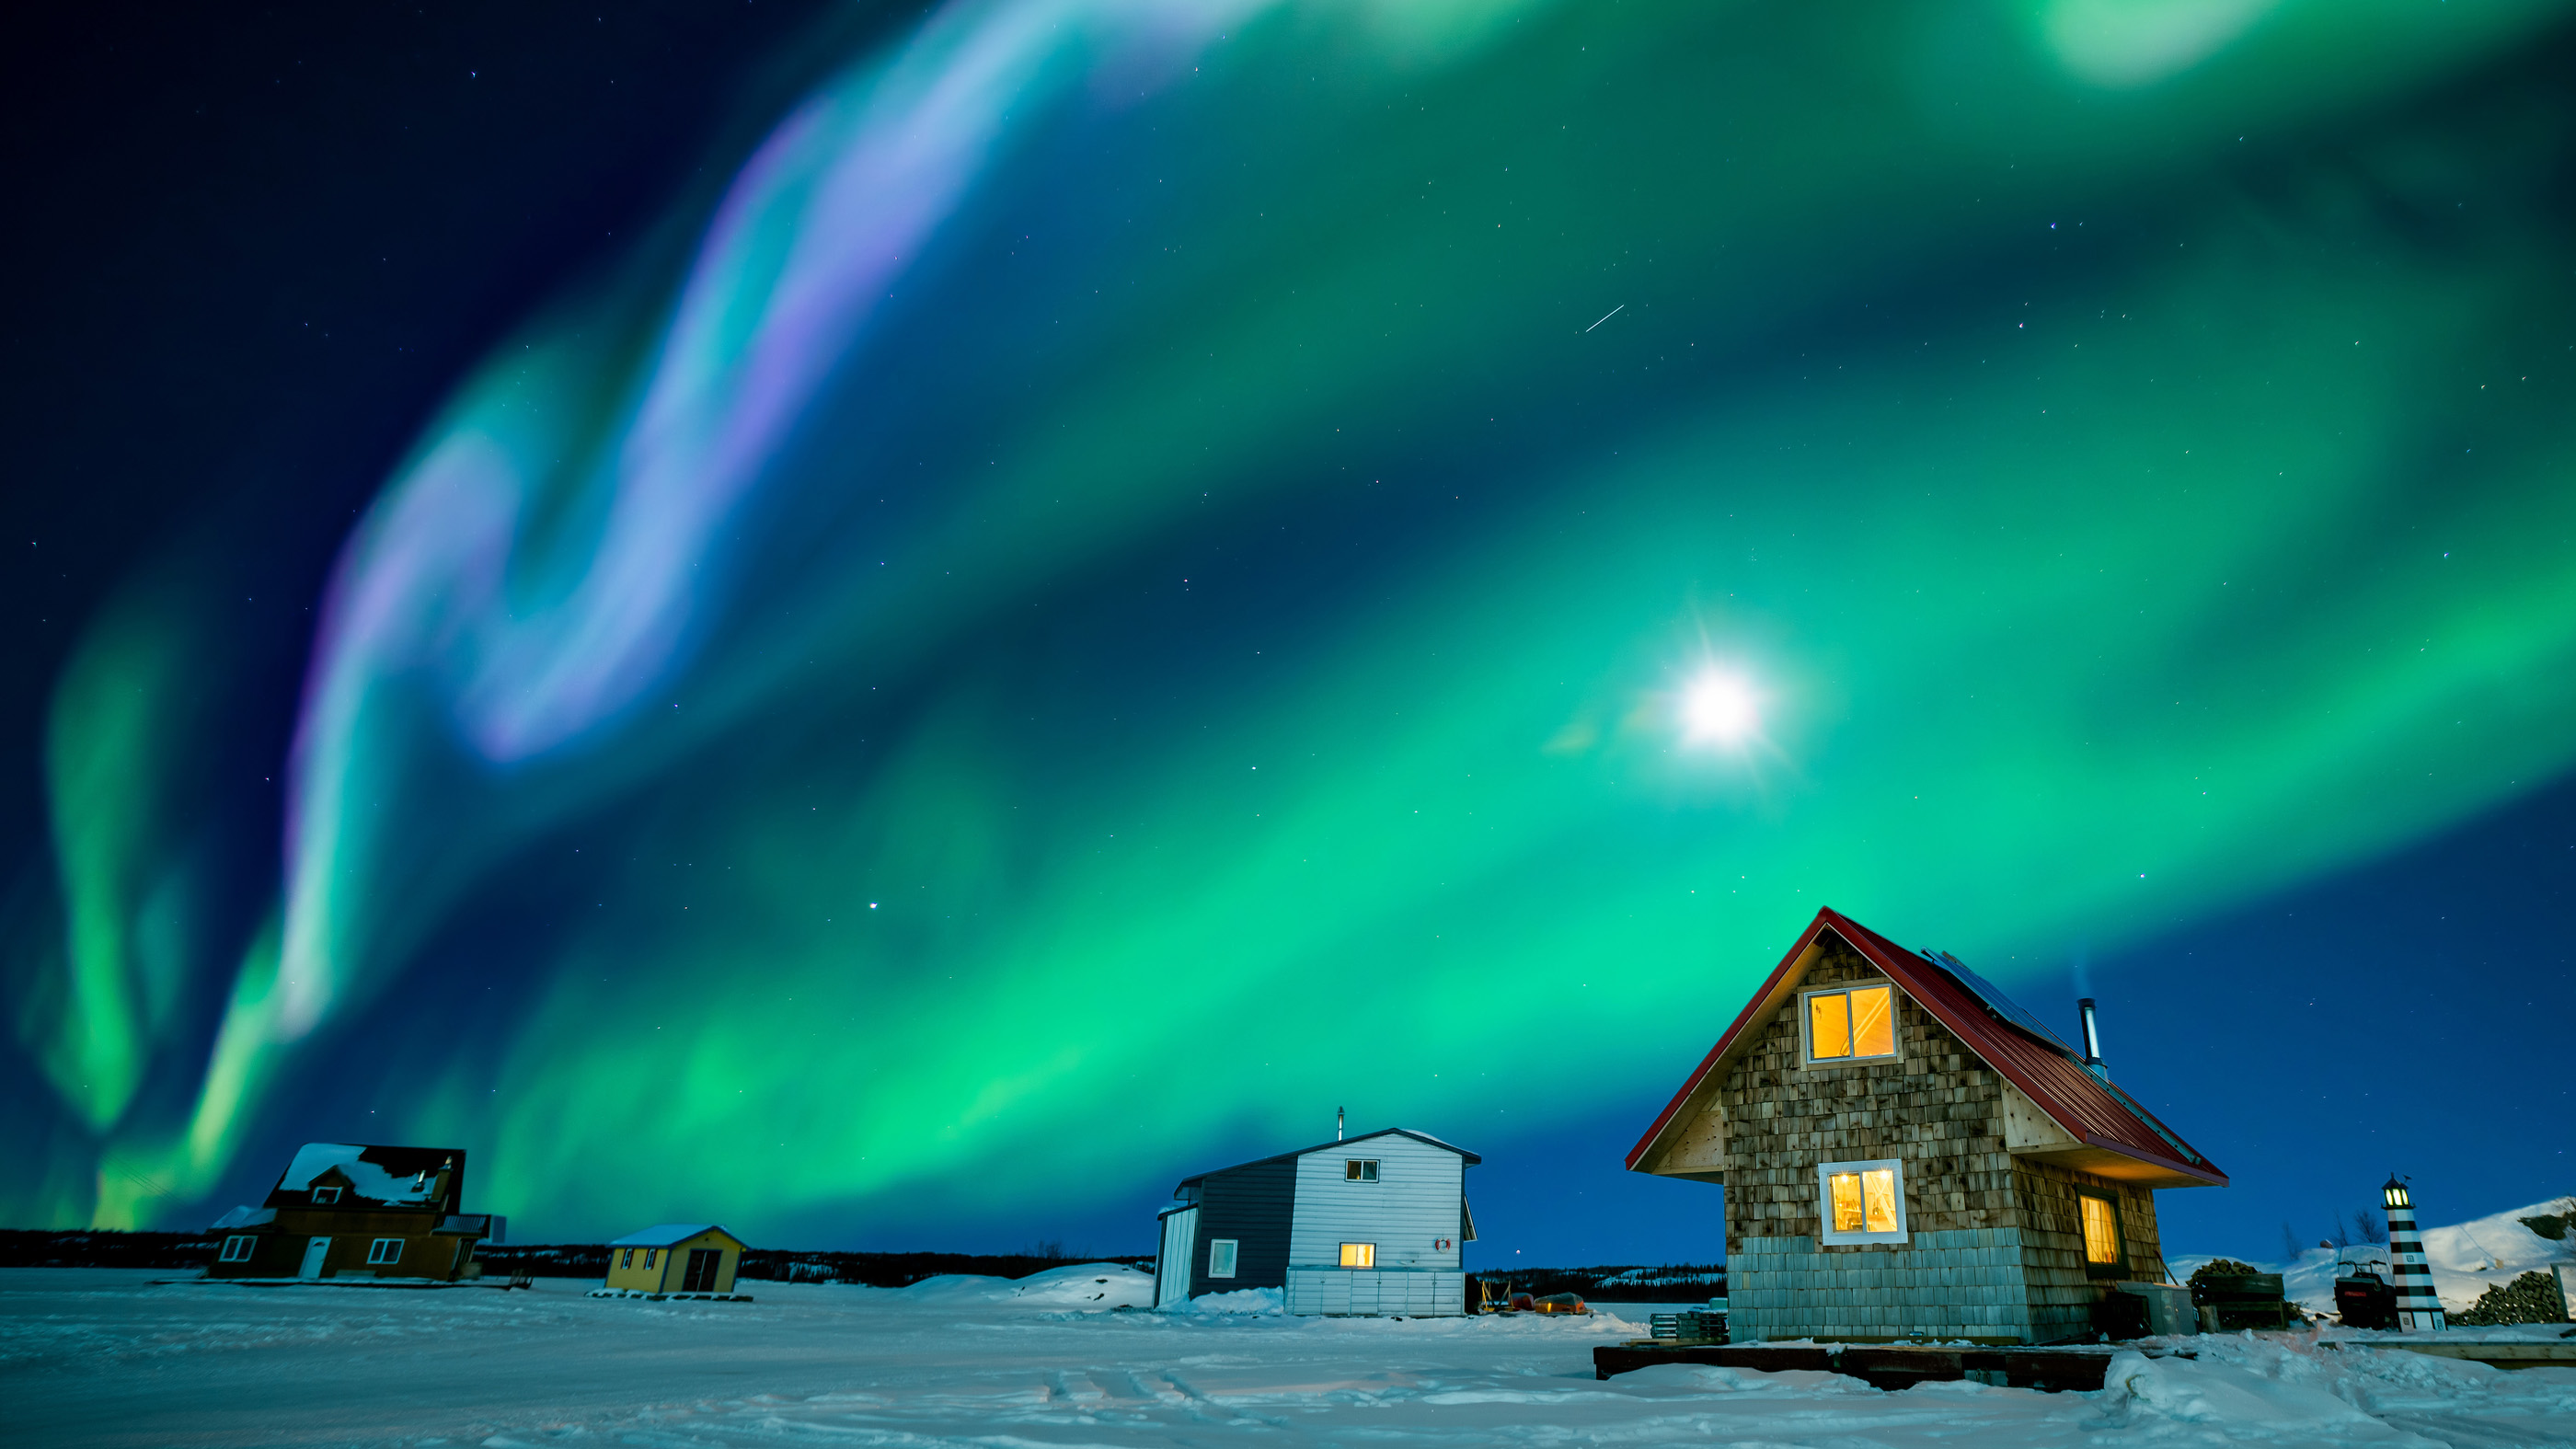 Find out how to watch the northern lights throughout far northern US tonight gMn9Lbpa9YhSrhQpqkAyi7